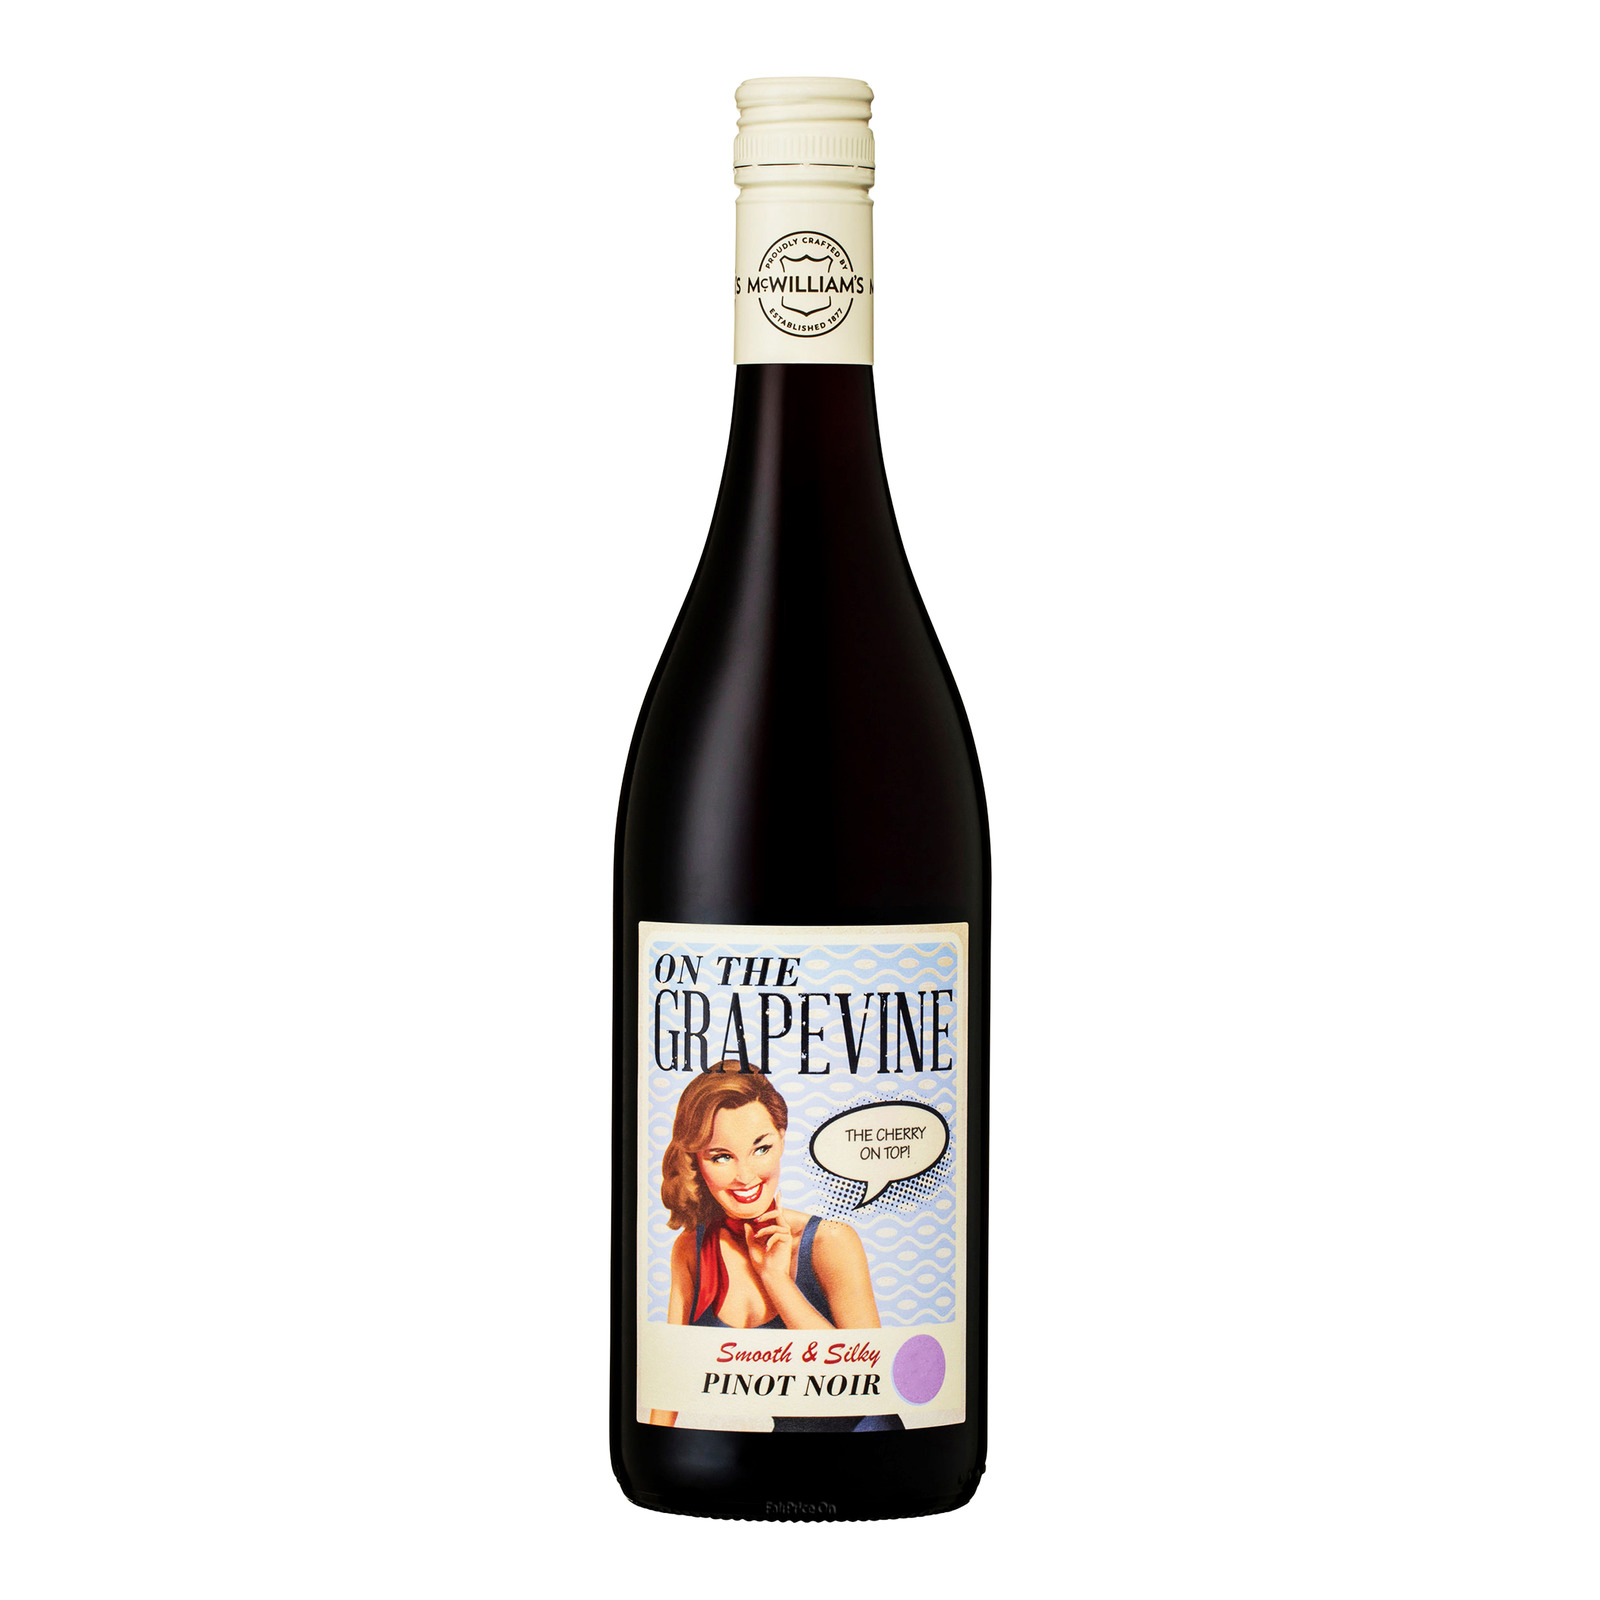 On The Grapevine Red Wine - Pinot Noir